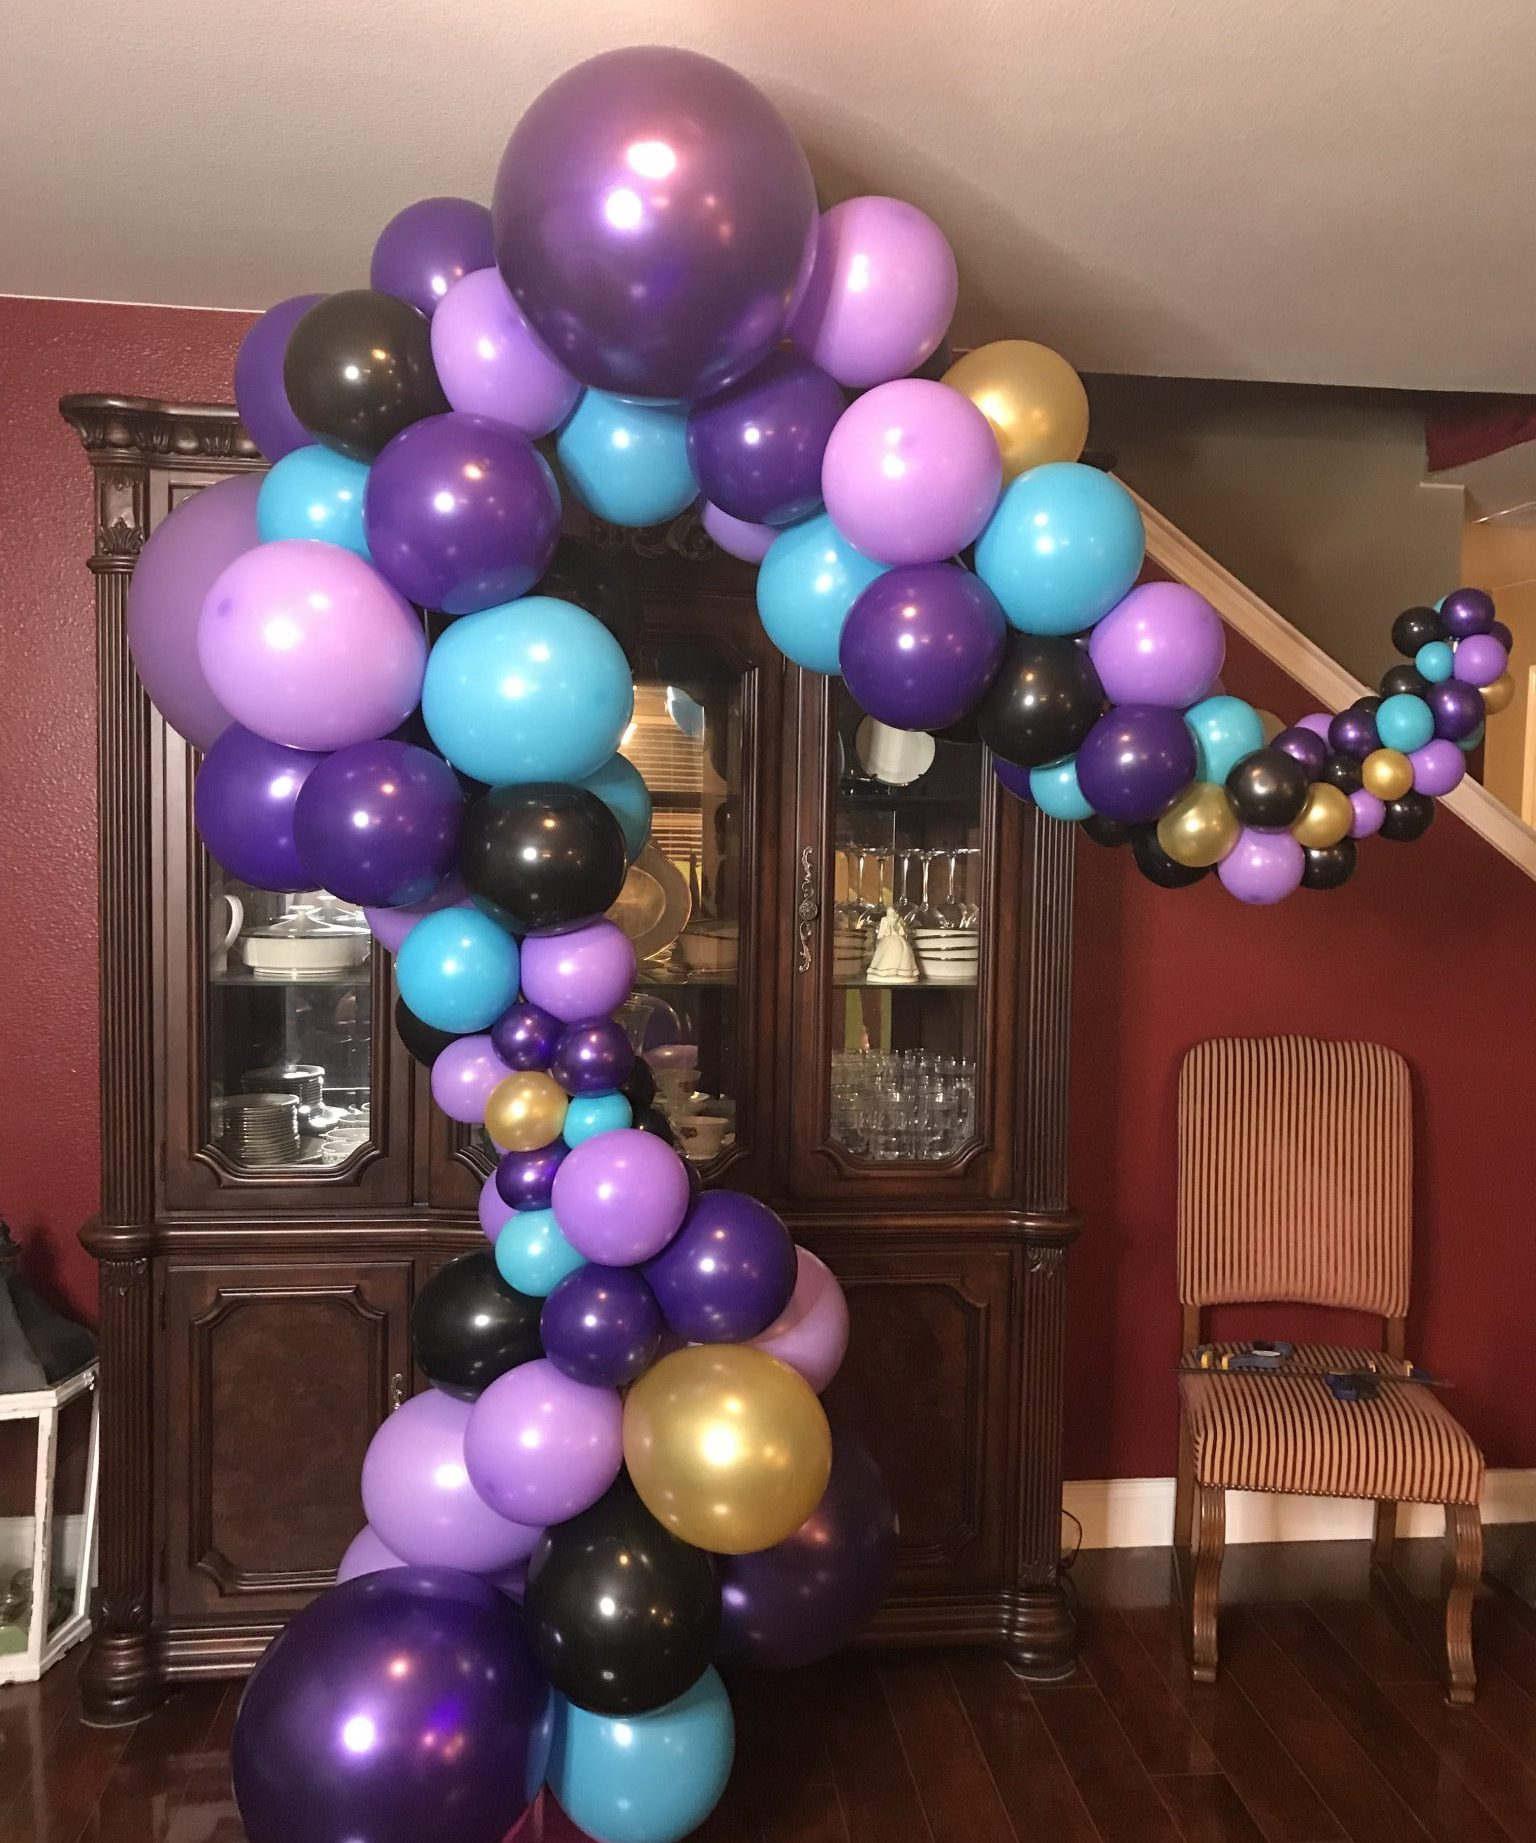 Whimsical Organic Balloon Arch